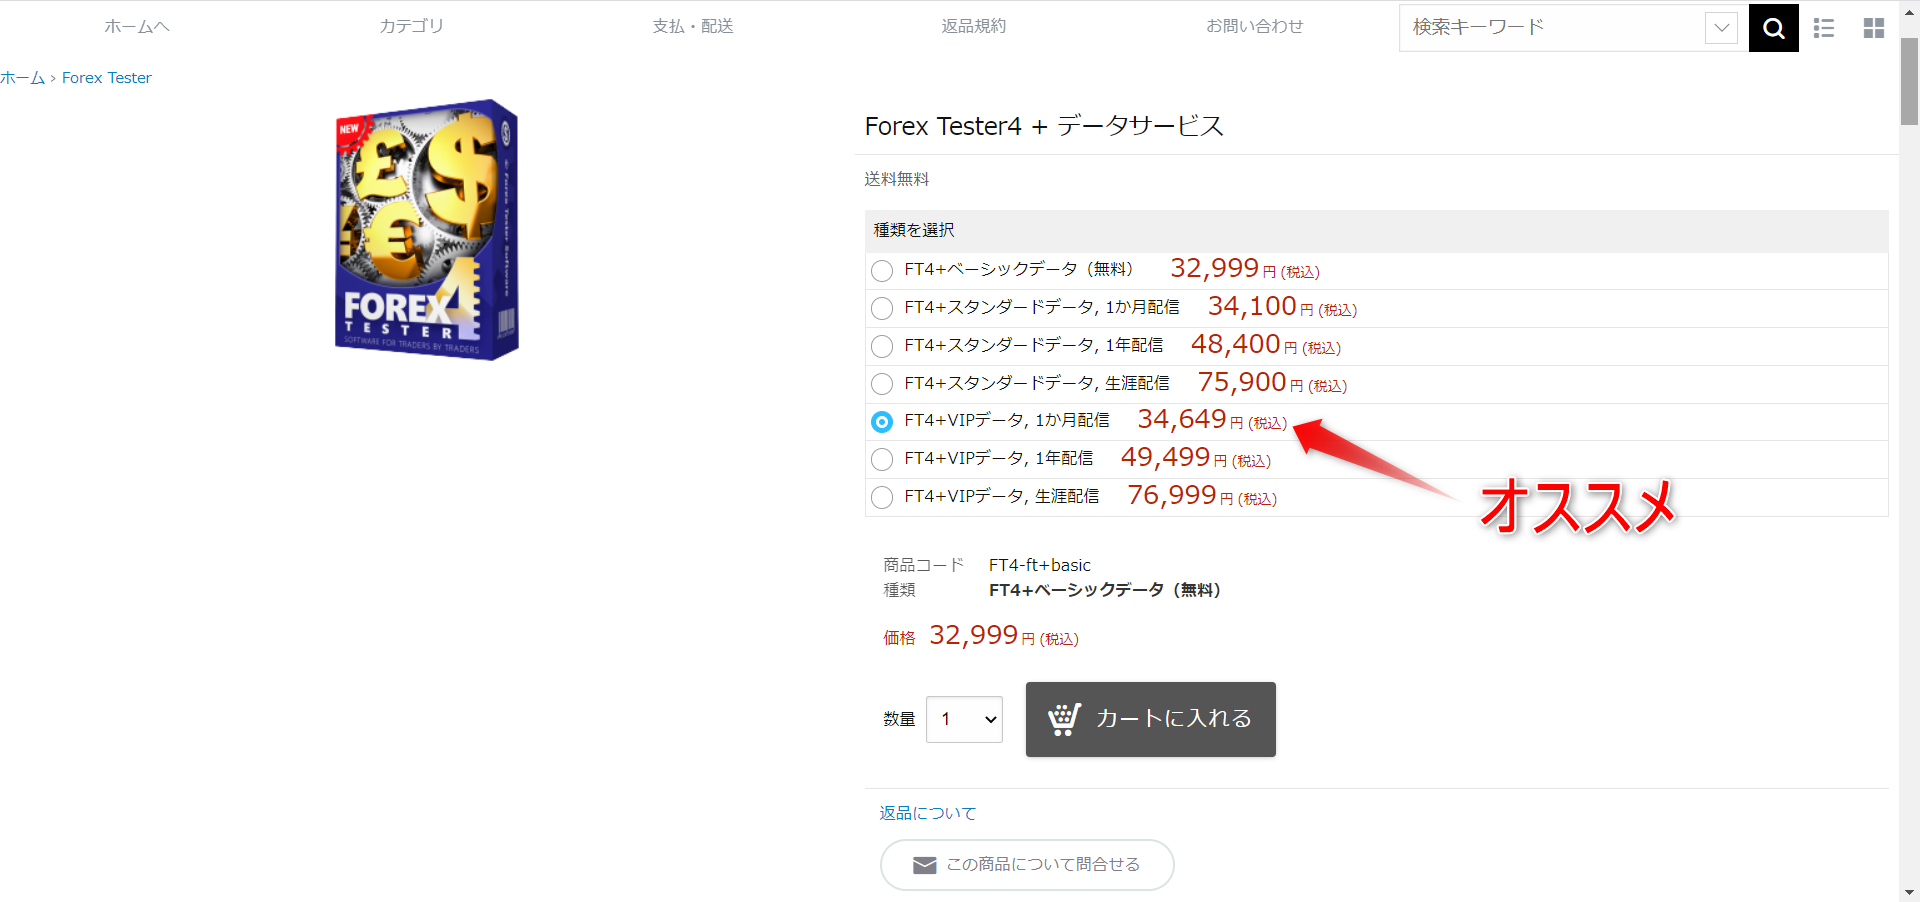 """<img src=""""img_5f8966223550d.png"""" alt=""""Forextester4 購入ページ プラン一覧"""">"""